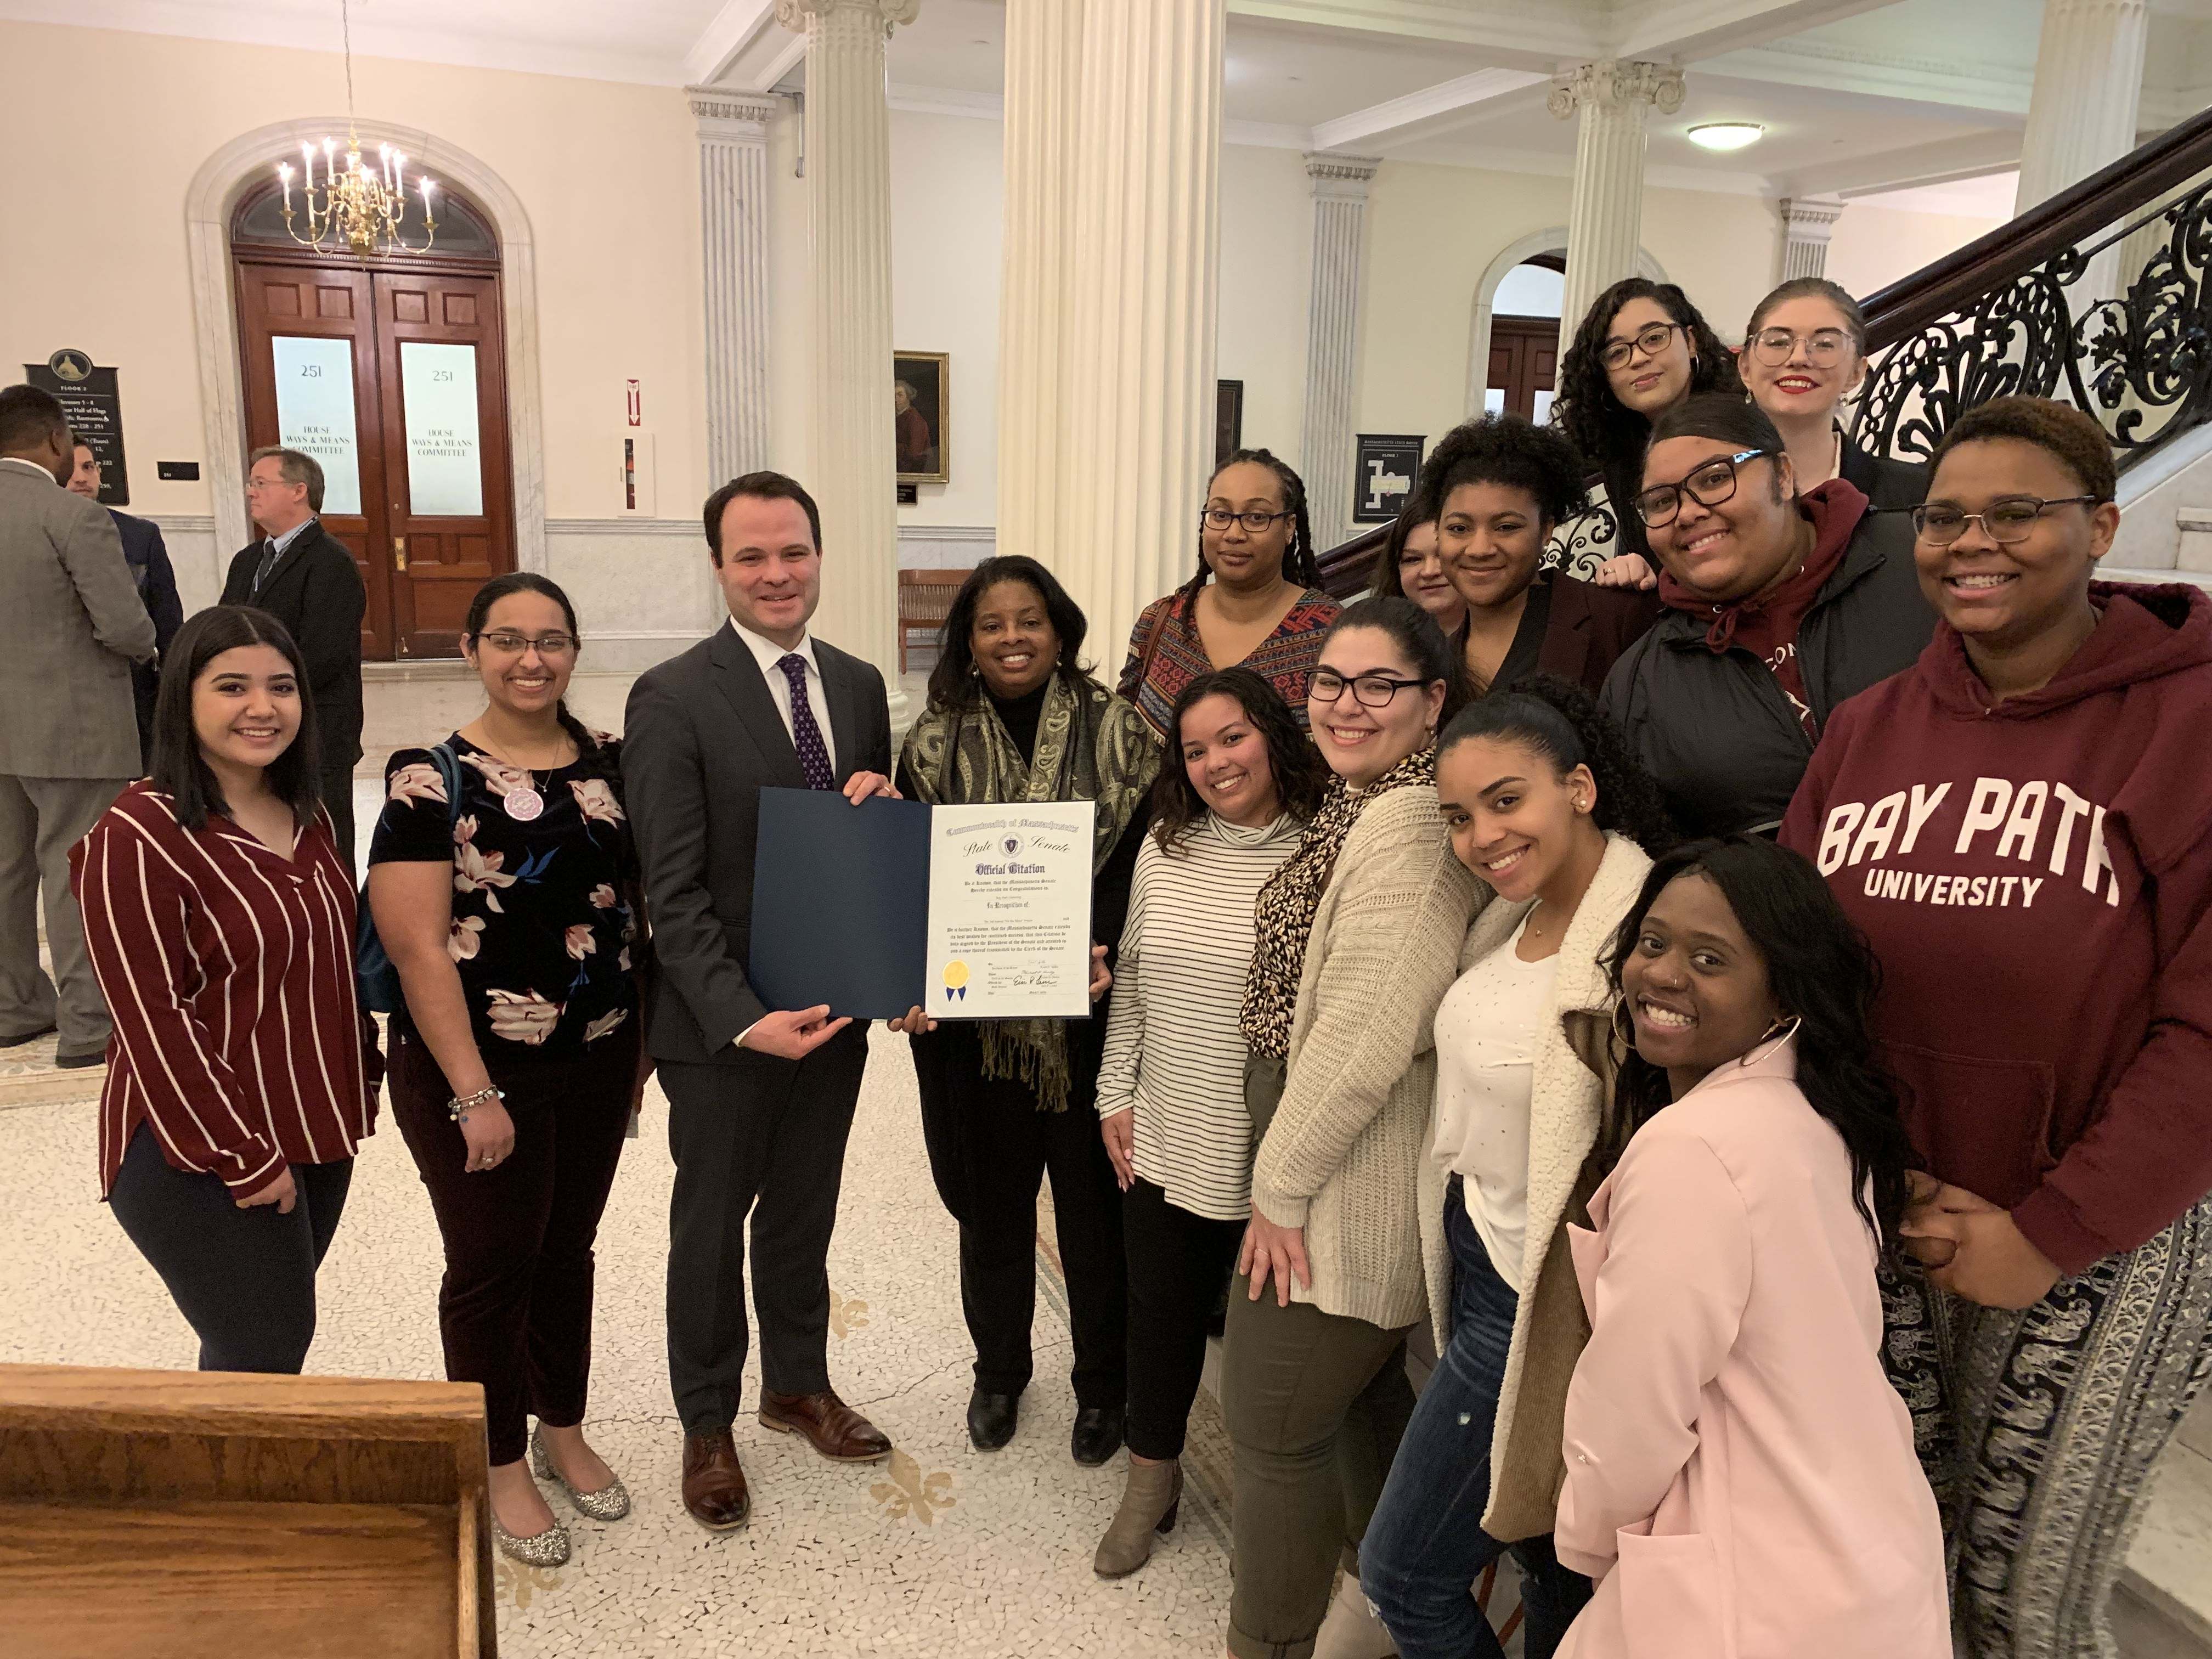 Senator Lesser presenting the proclamation to Bay Path students